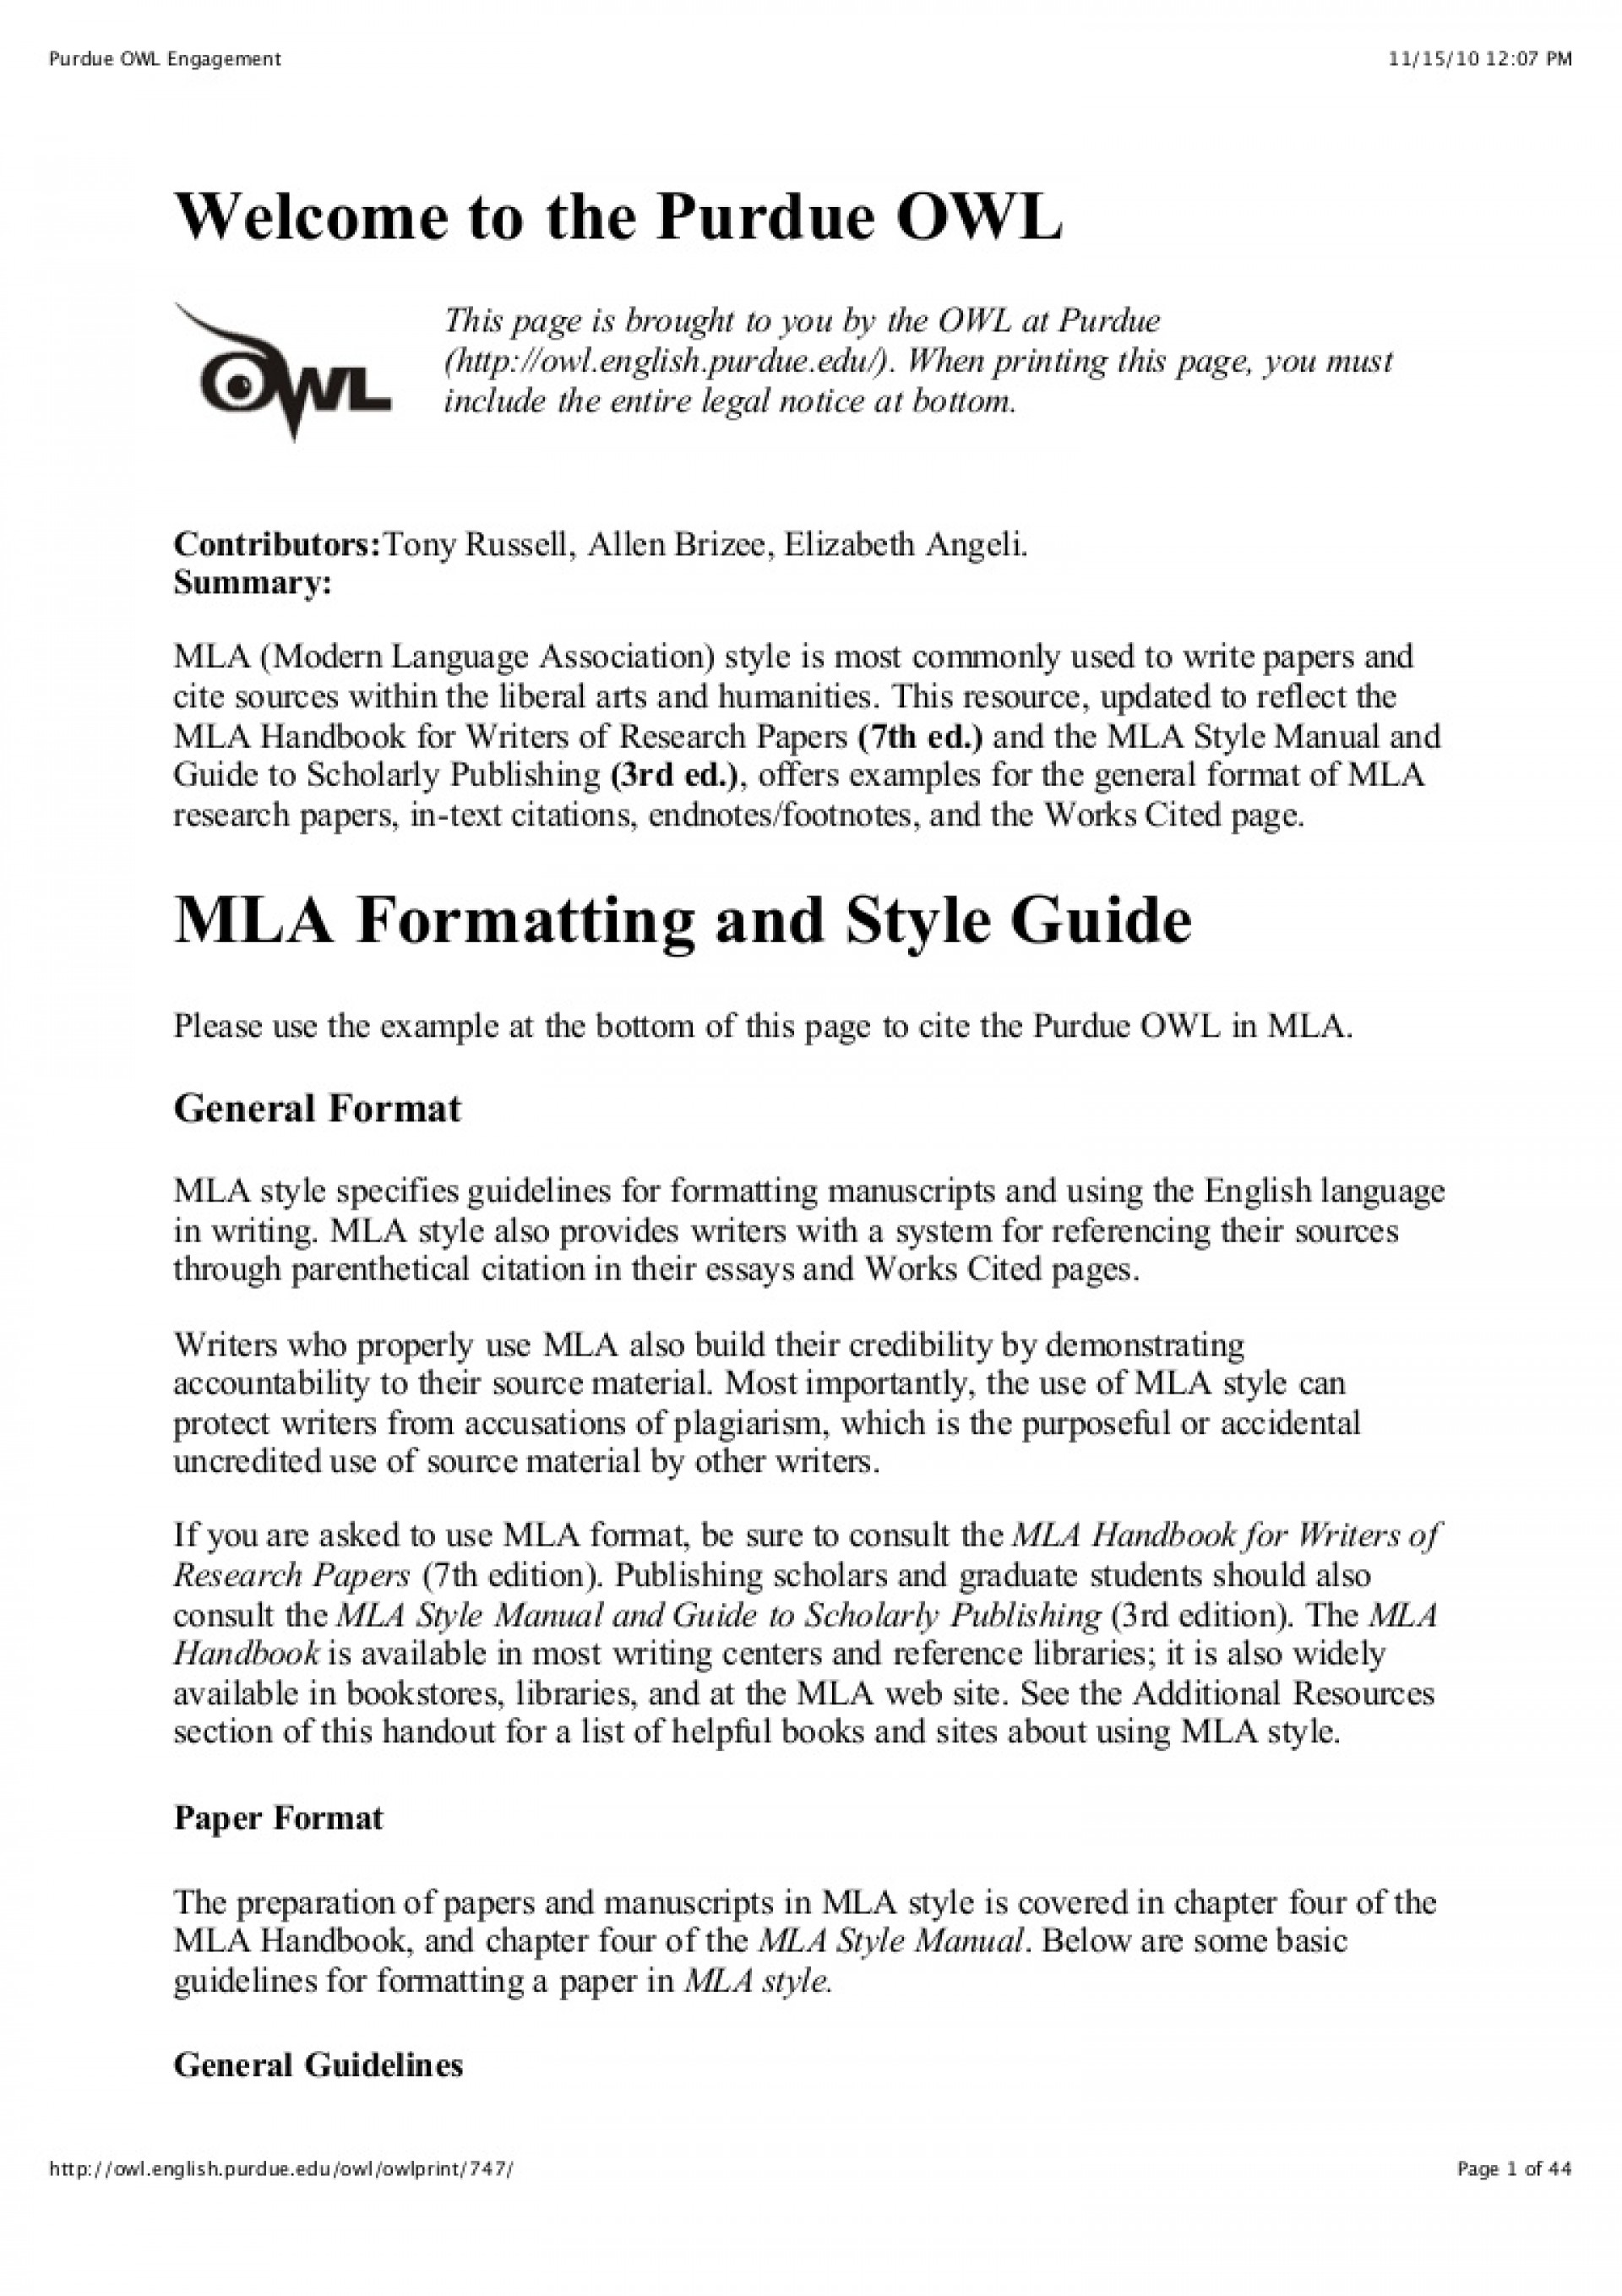 026 Citation Page For Research Paper Purdueowlmlastyleguide Phpapp02 Thumbnail Wonderful How To Make A Works Cited About The Little Rock Nine 1920